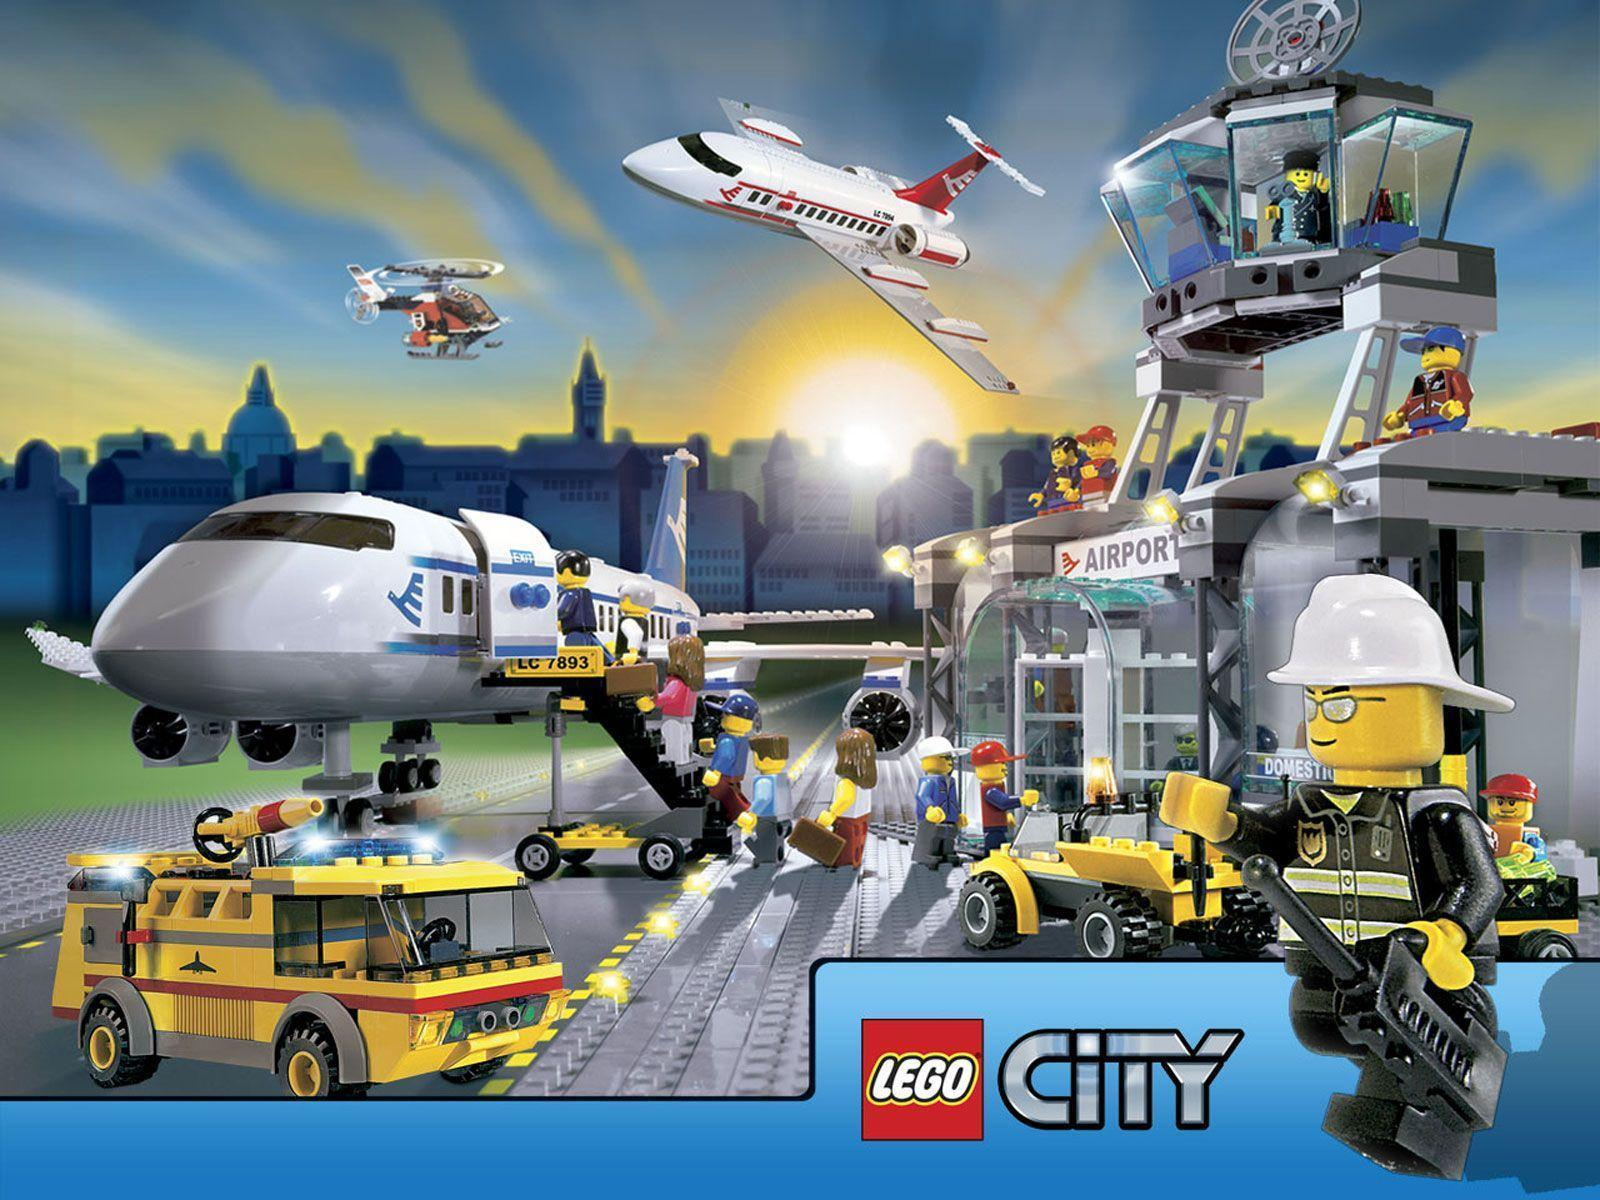 Lego City Wallpapers Collection (27+)